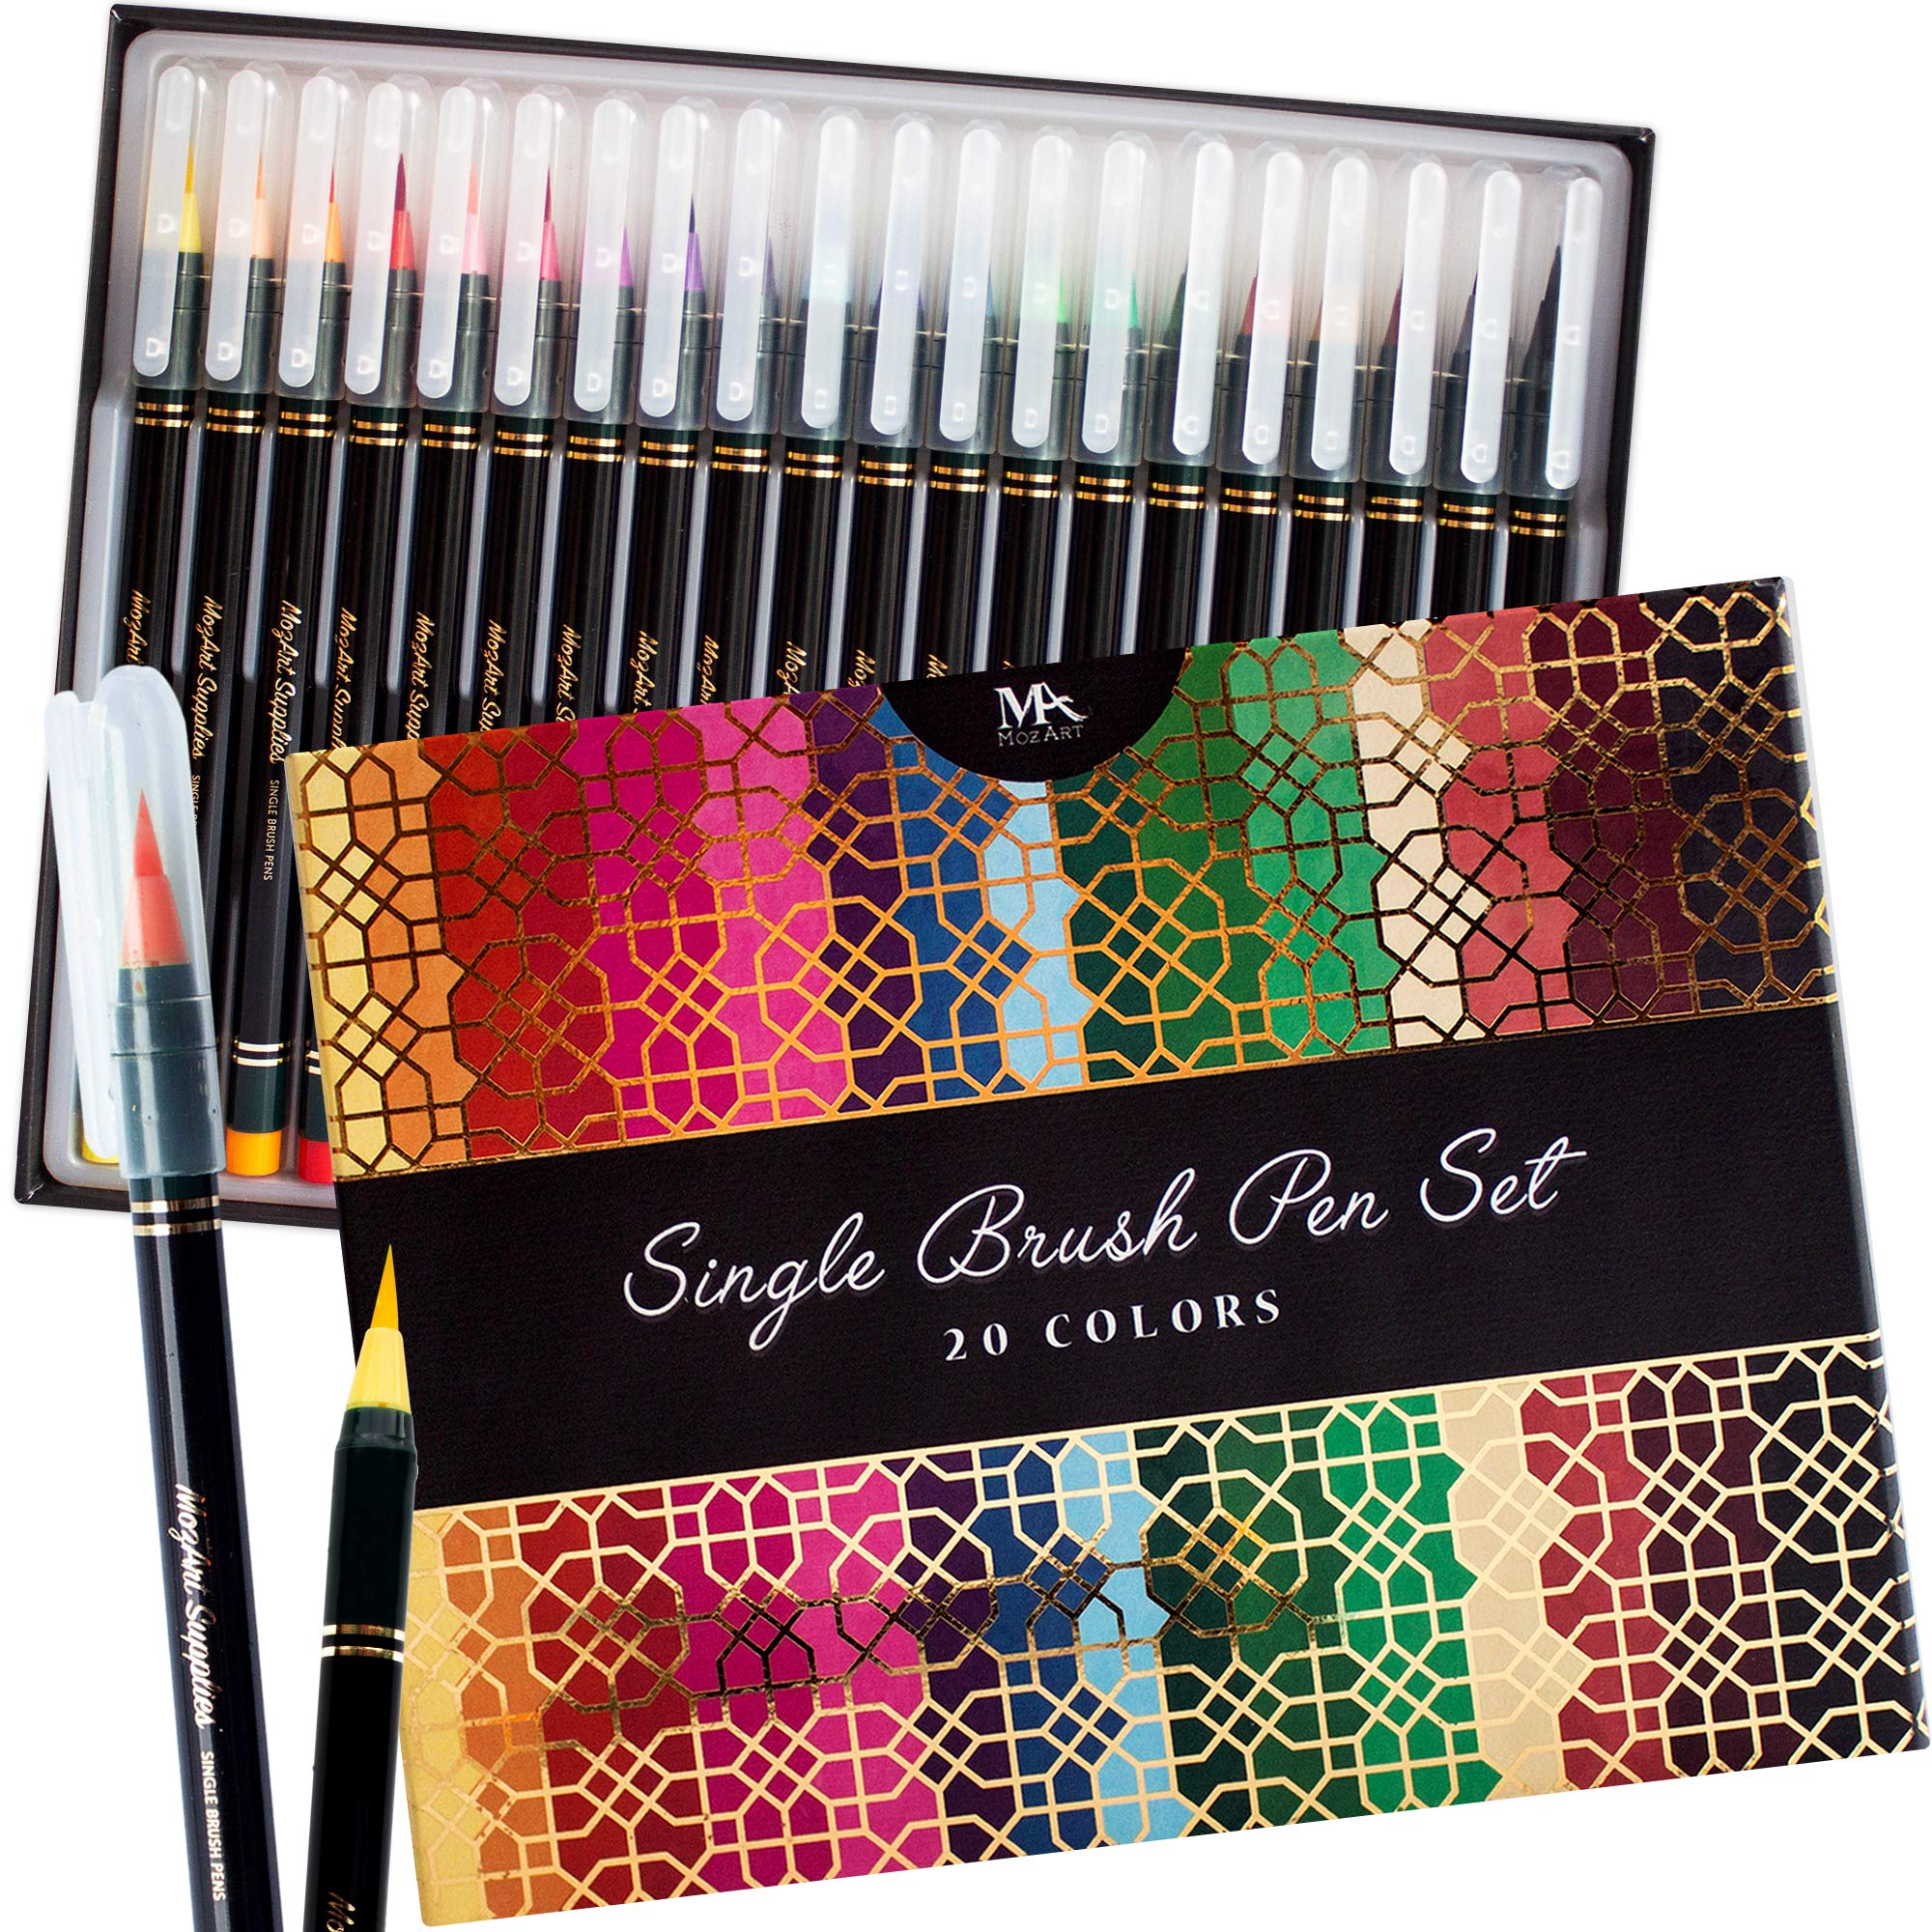 Luxury Single Brush Pen Gift Box – 20 Premium Colors, Soft, Flexible Real Brush Tips- Water Based Ink for Watercolor Effects - Ideal for artists, students and calligraphers - MozArt Supplies